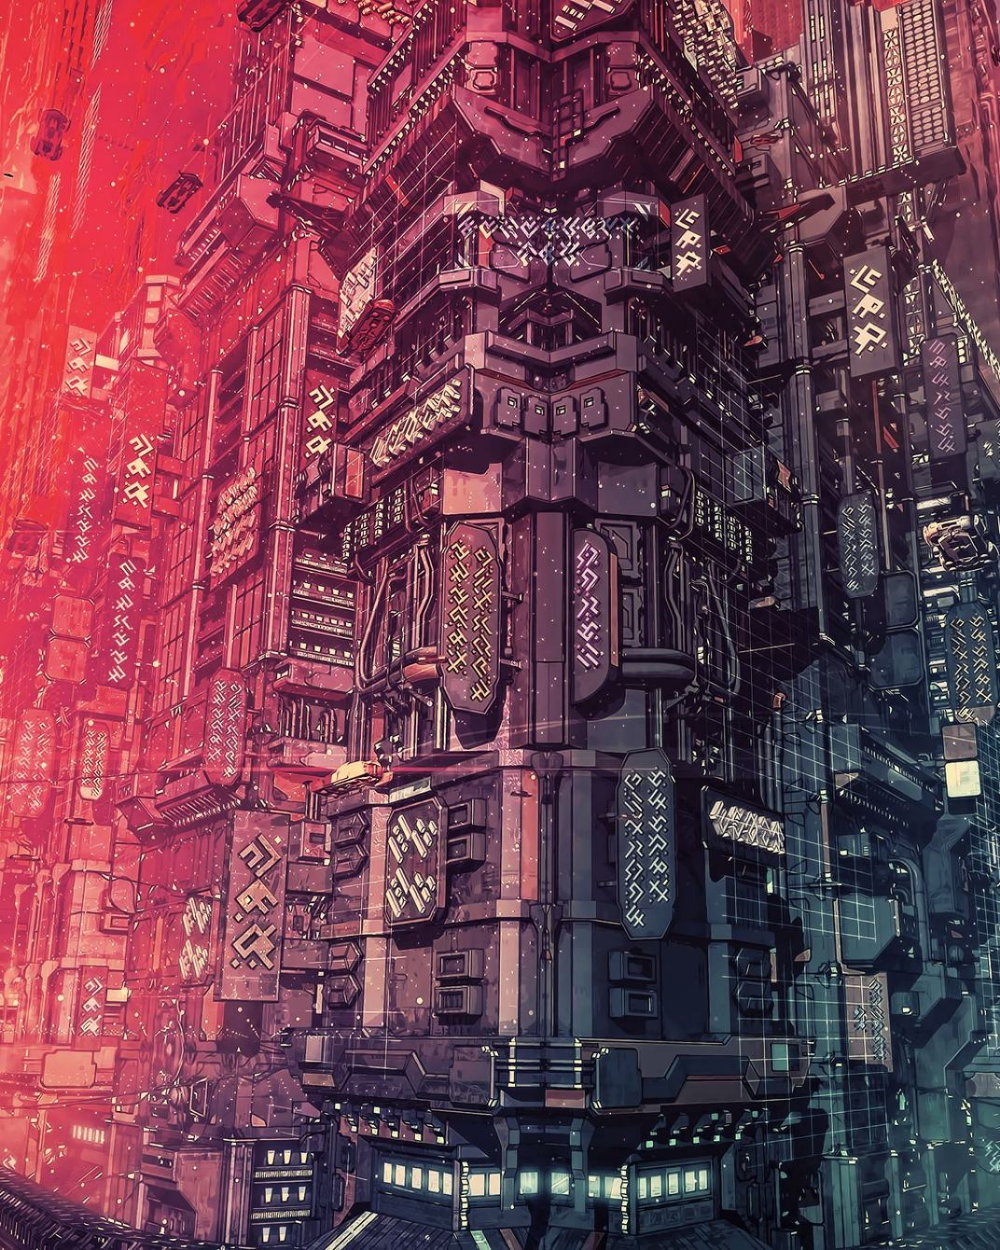 Cyberpunk City Wallpaper Cyberpunk City Futuristic City Futuristic Architecture